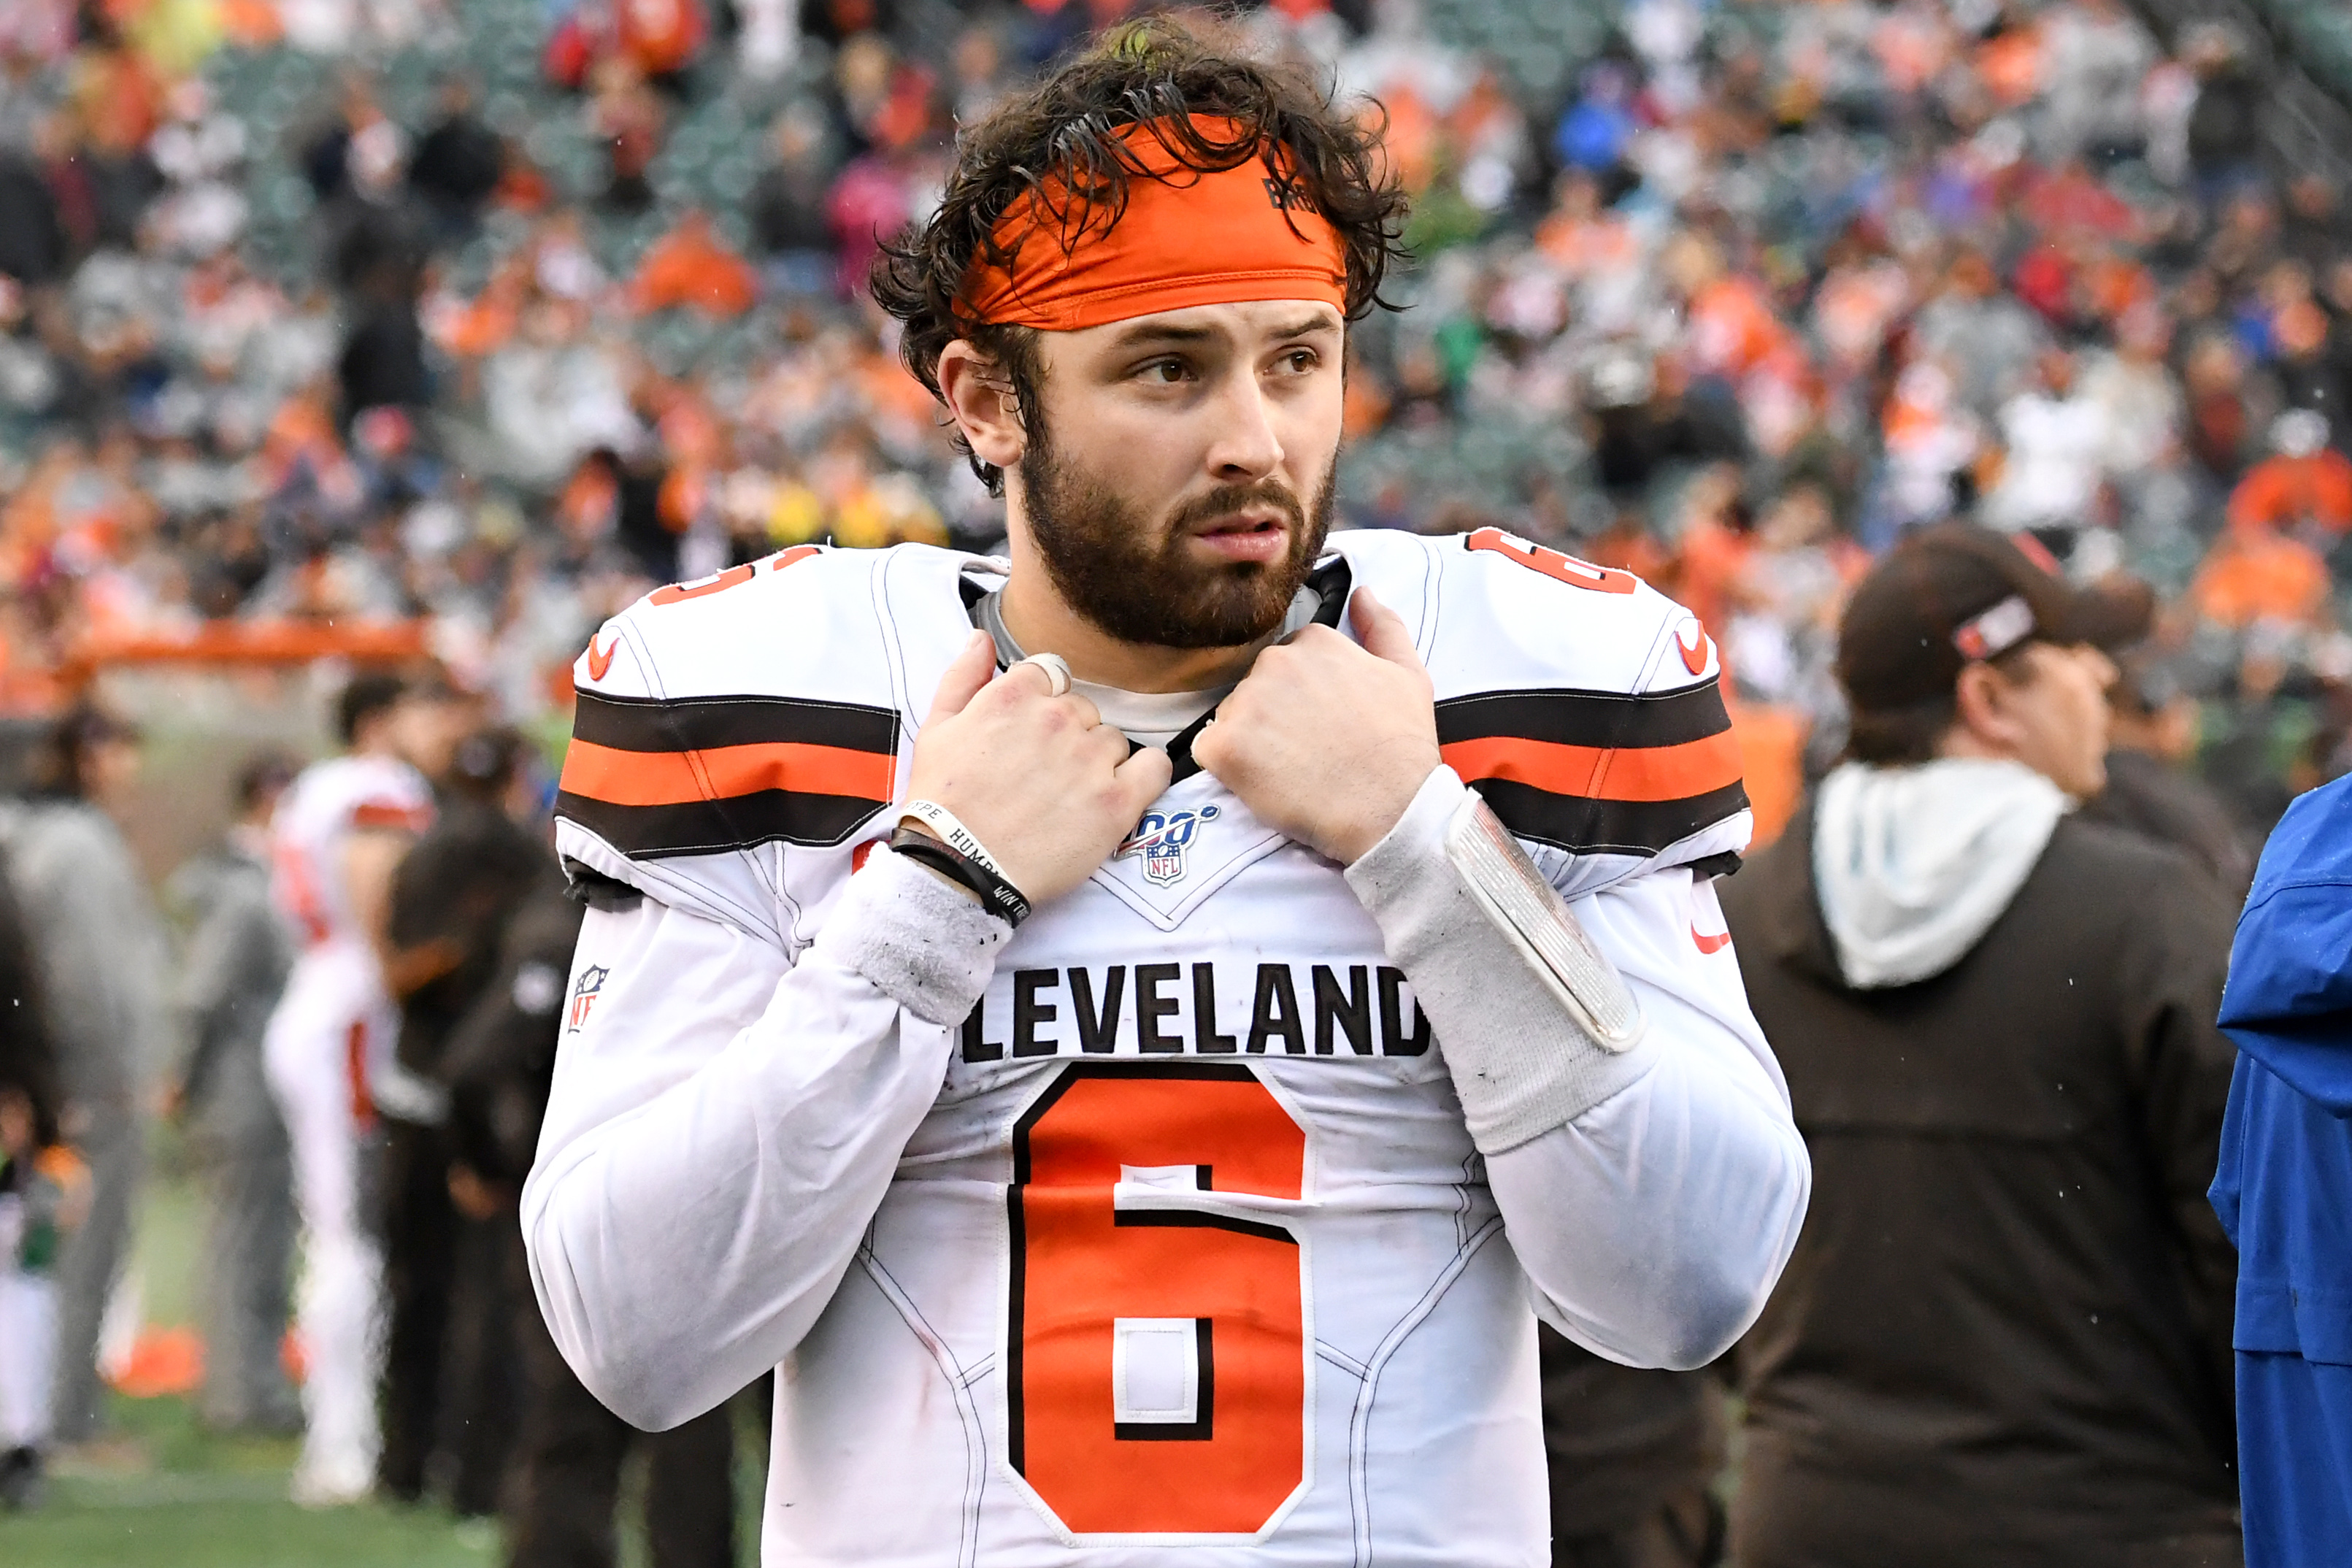 Tony Grossi suspended for calling Browns' Baker Mayfield slur